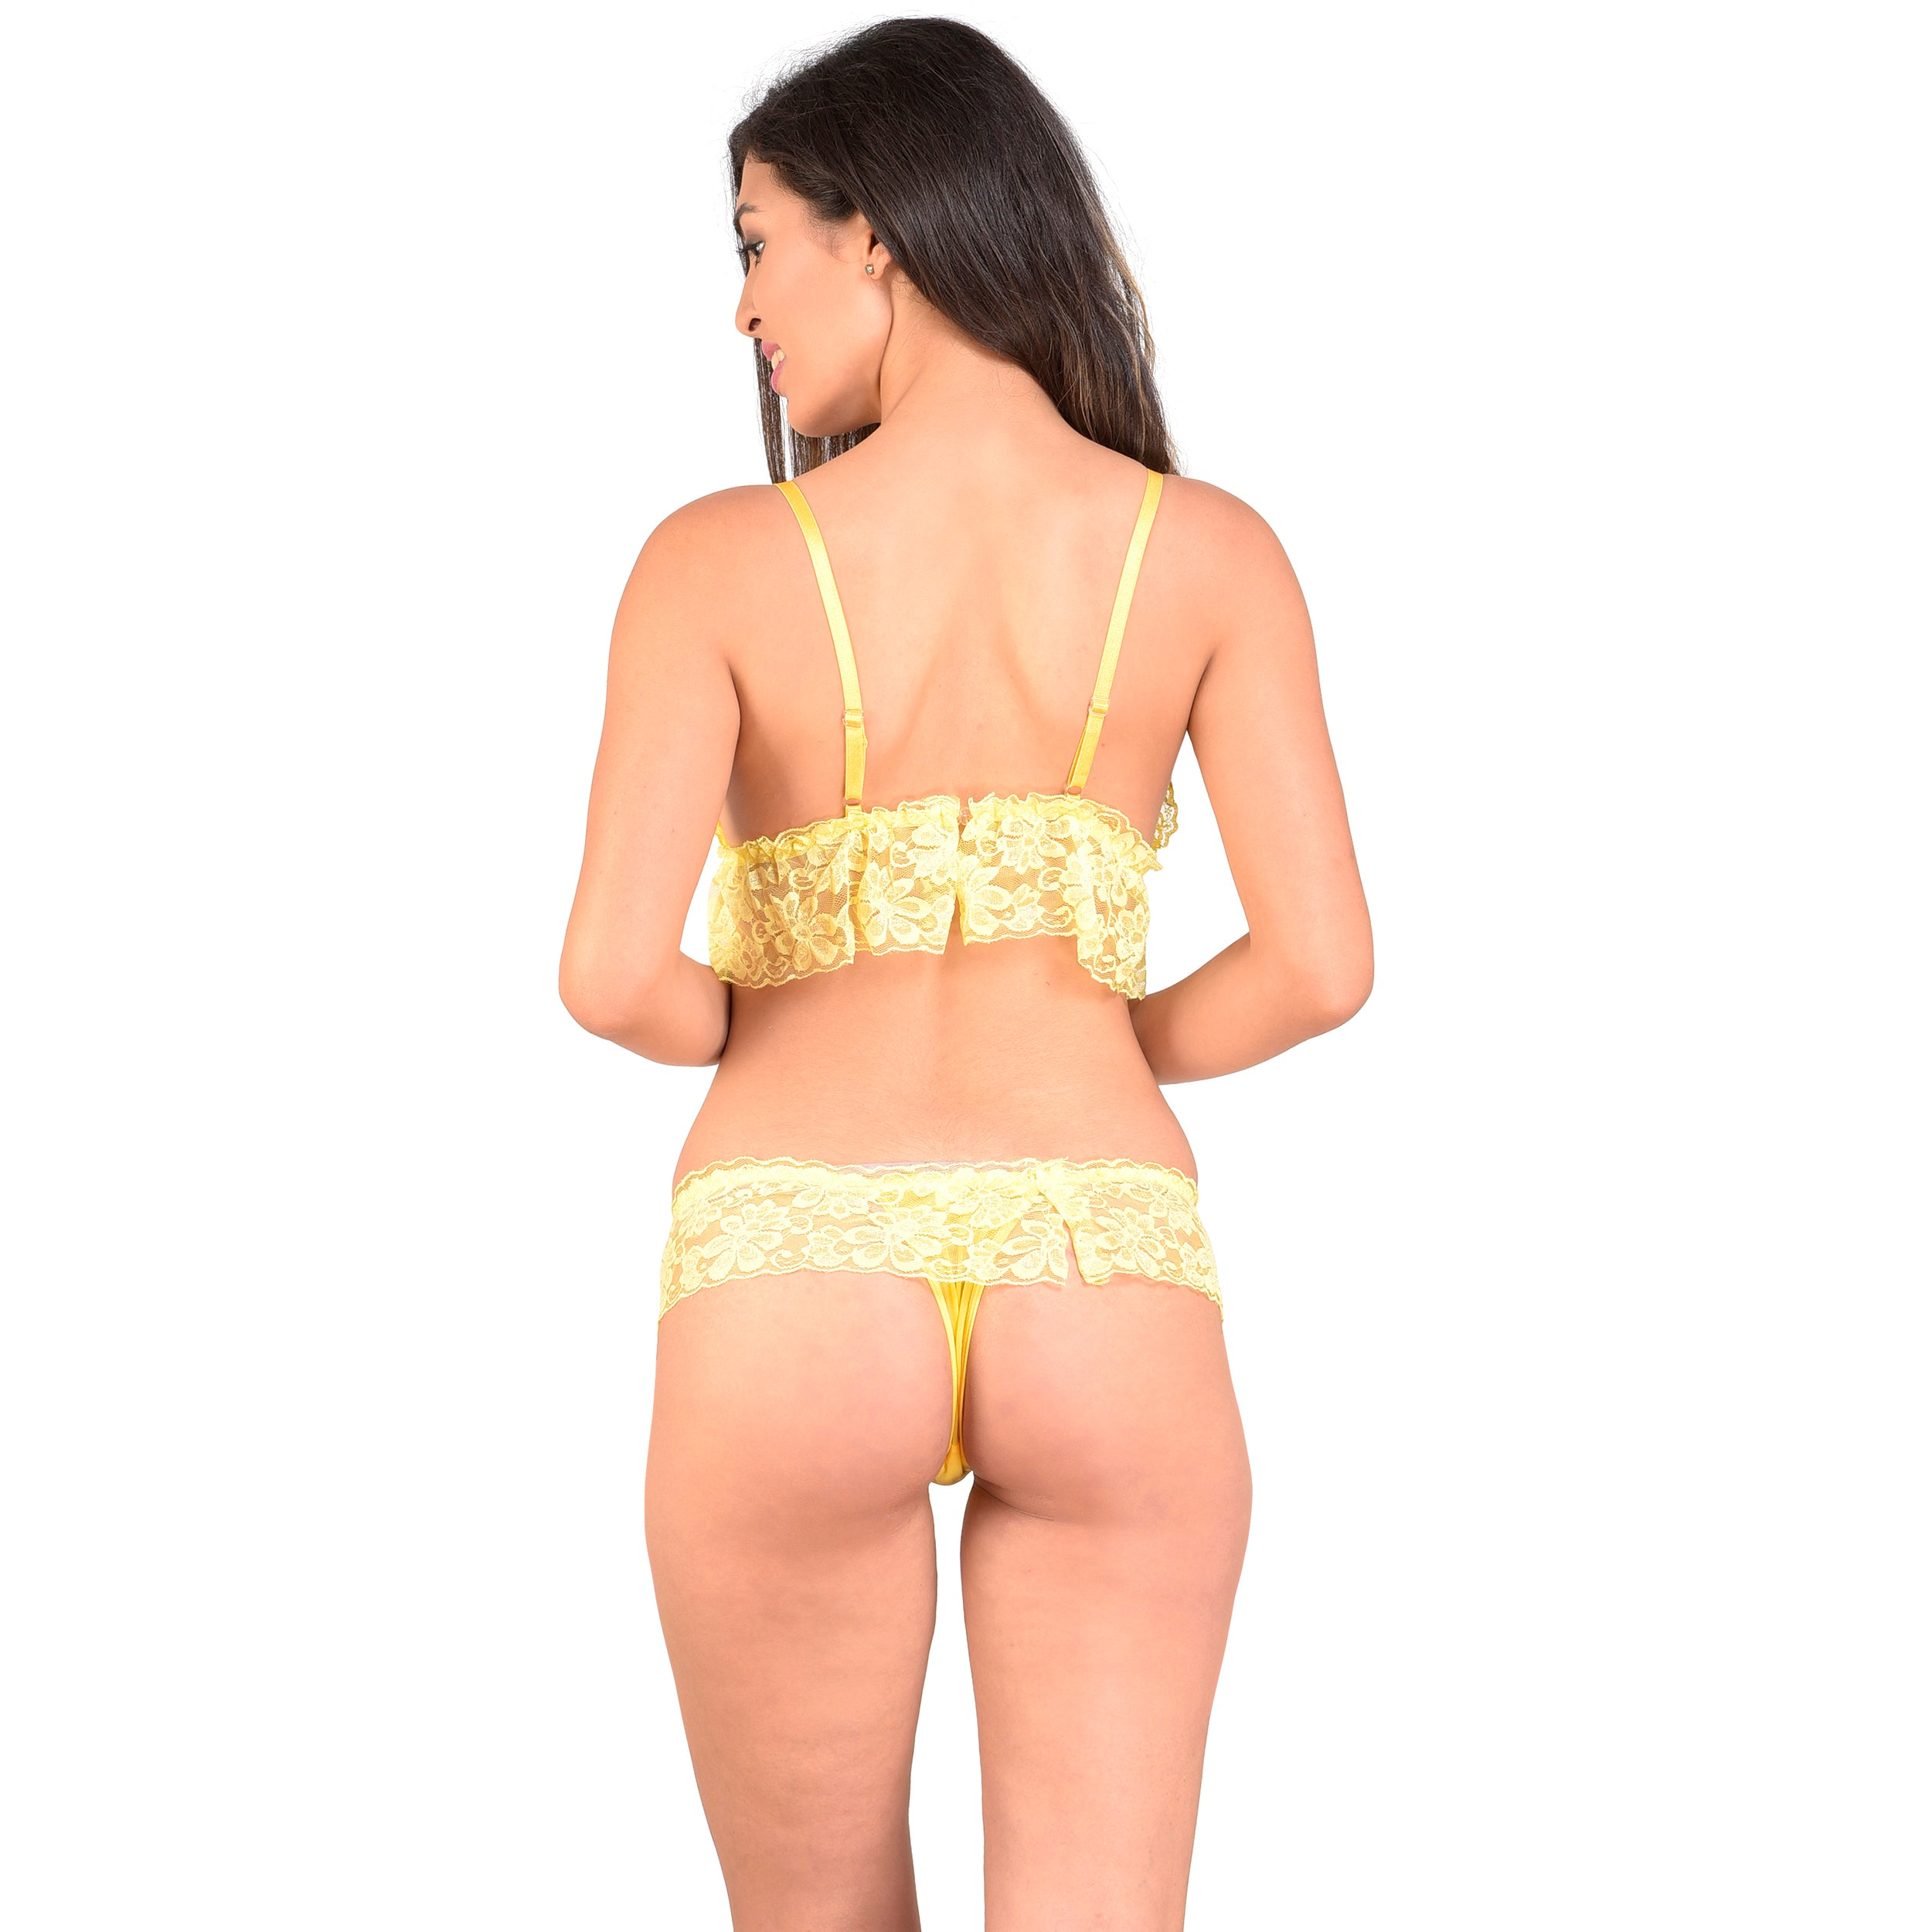 Ficuster Women Floral Lace Adjustable Straps Yellow Bra Panty Set